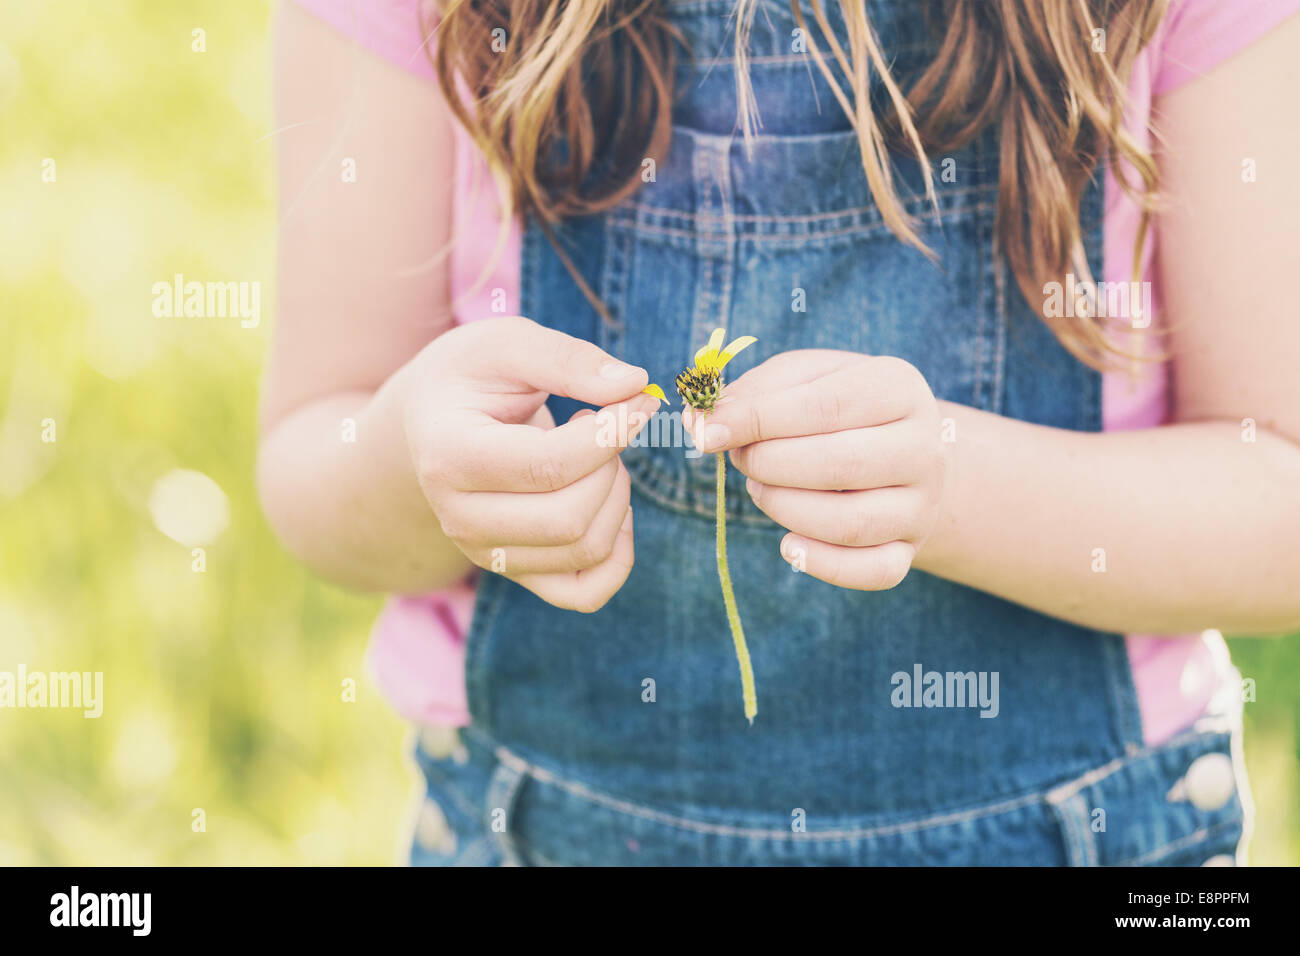 tween girl with daisy, making a wish, just her hands in view - Stock Image